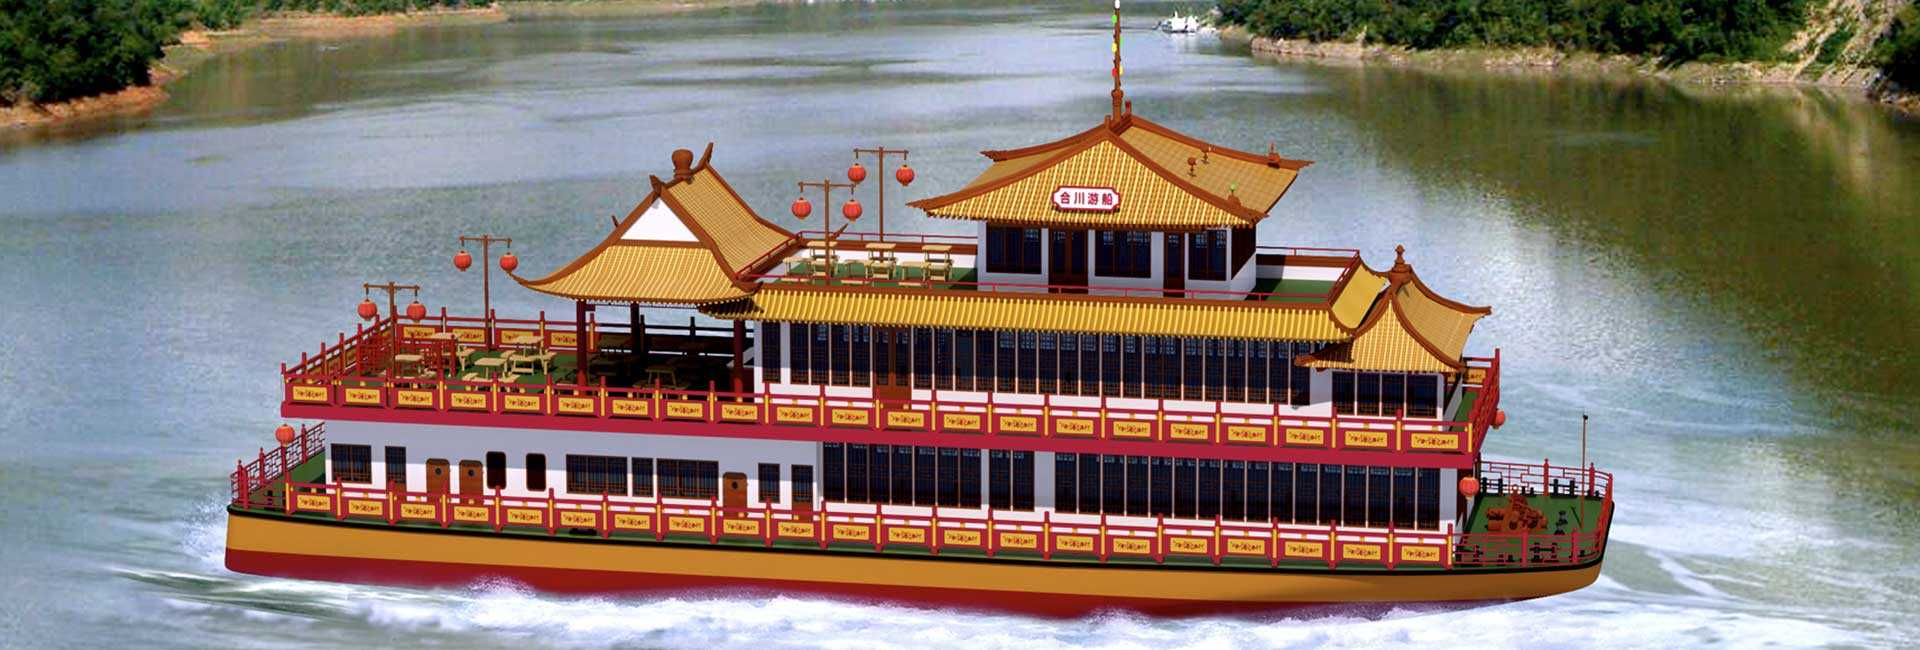 "The Song-Dynasty-Style Cruise Ship ""Diaoyucheng"" Will Sail ..."